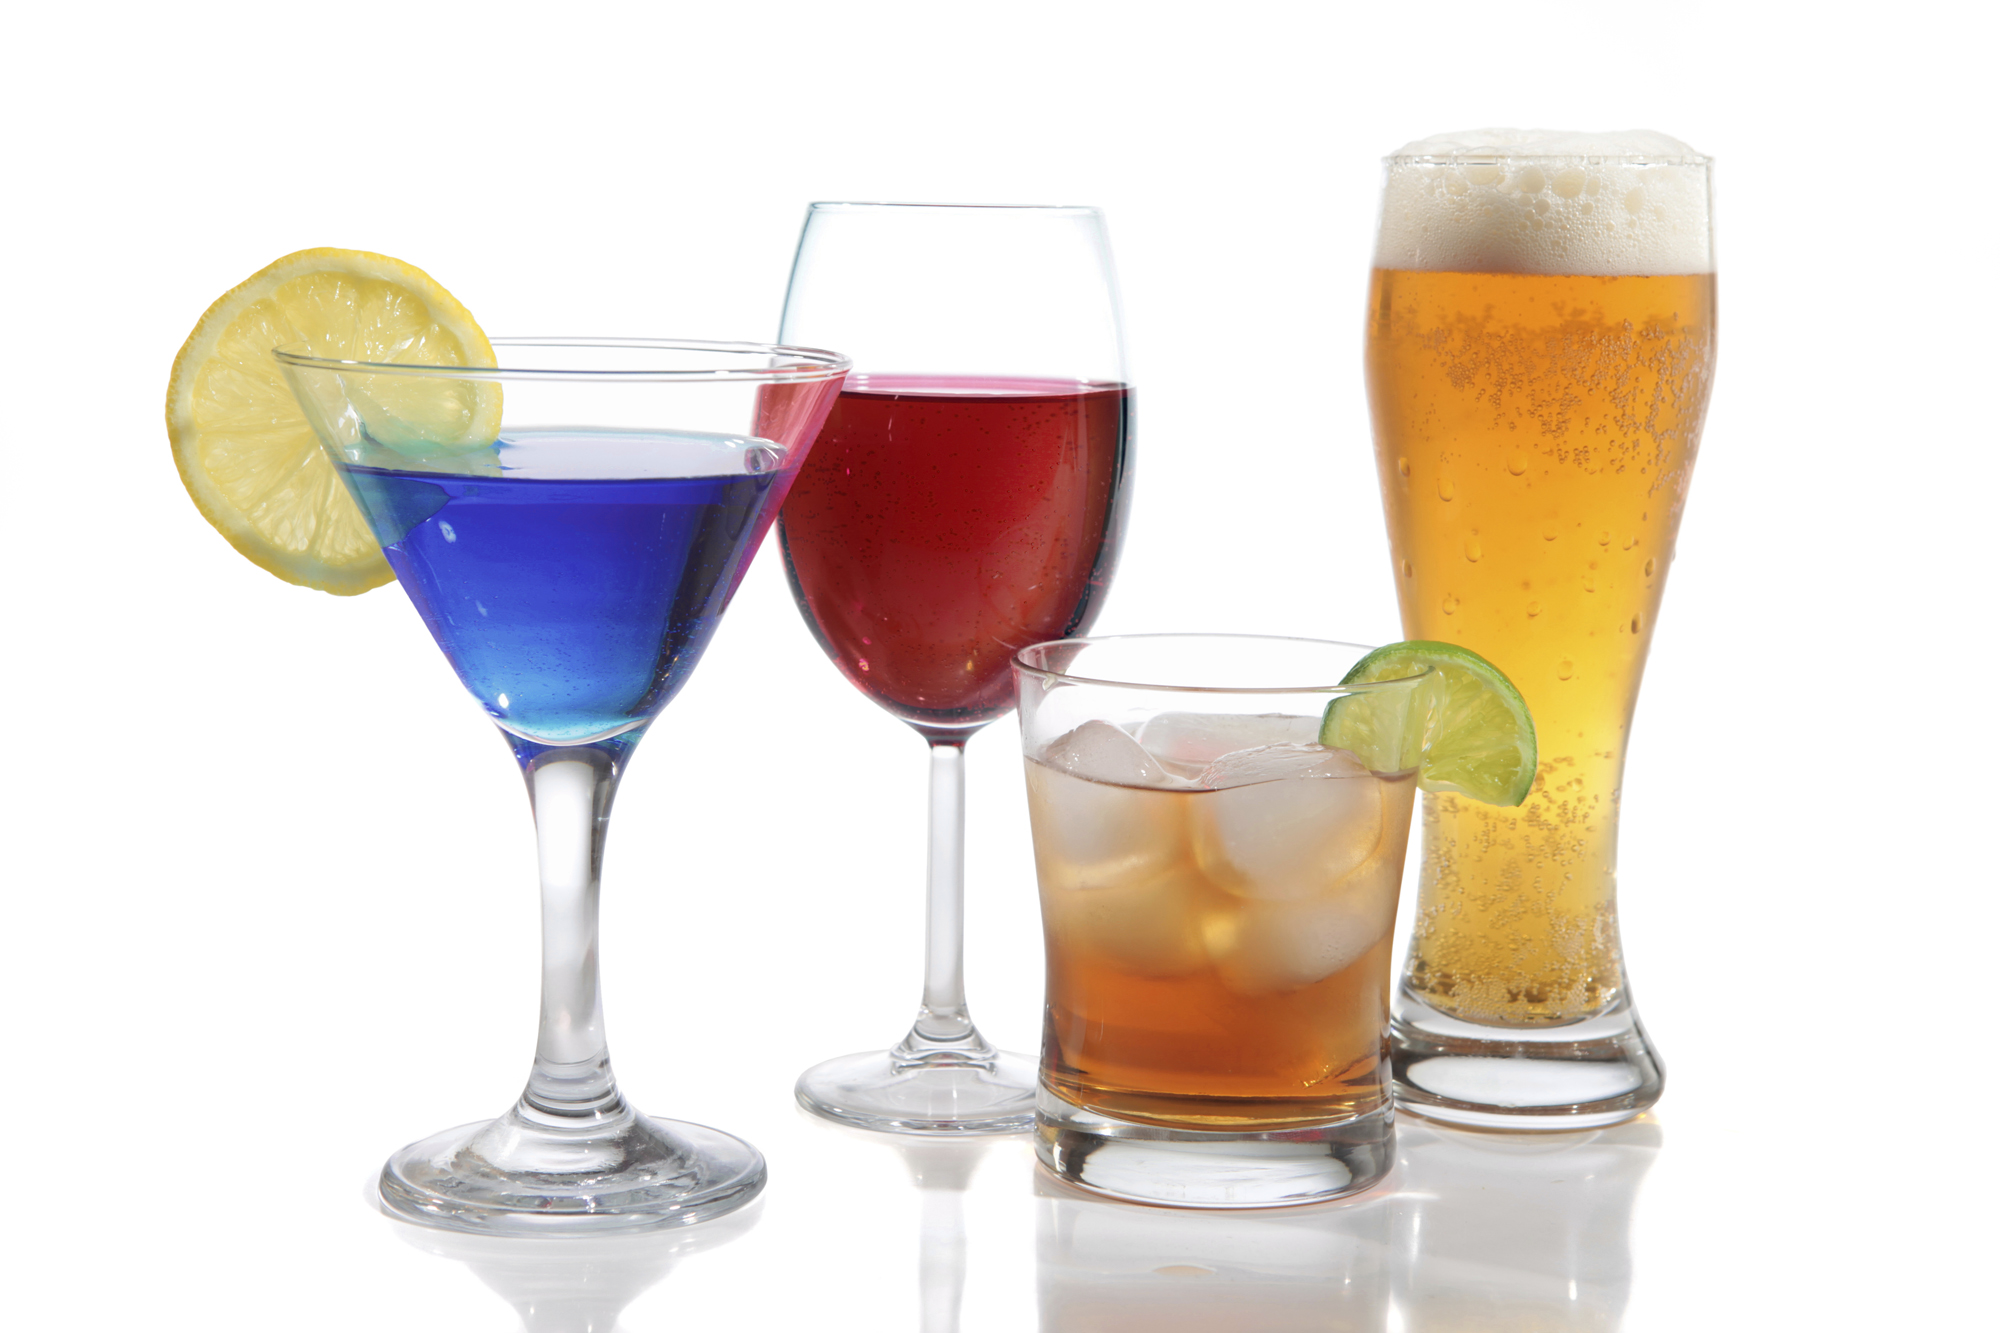 Bitters Keep Climbing As Consumers Explore New Flavor Profiles | Shanken News Daily